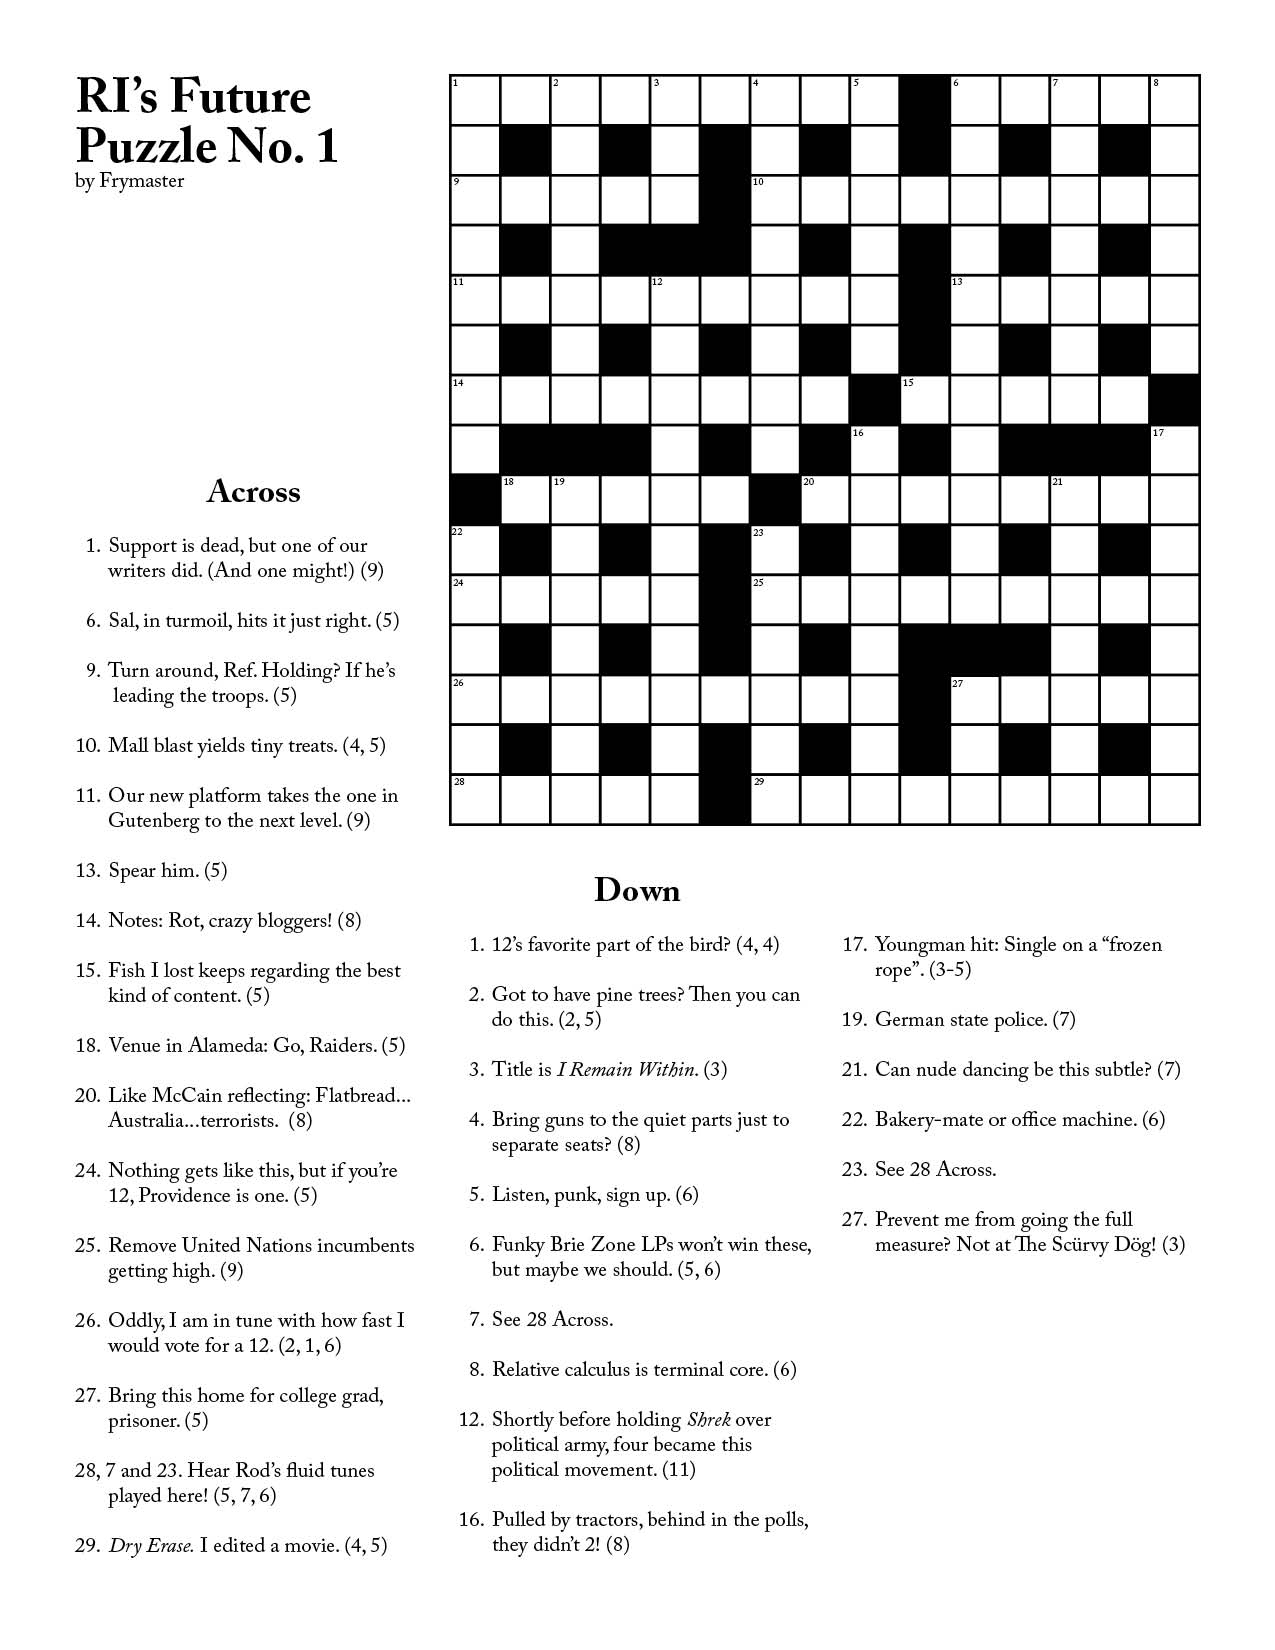 Ri Future Cryptic Crossword #1 - Printable Cryptic Crossword Puzzles